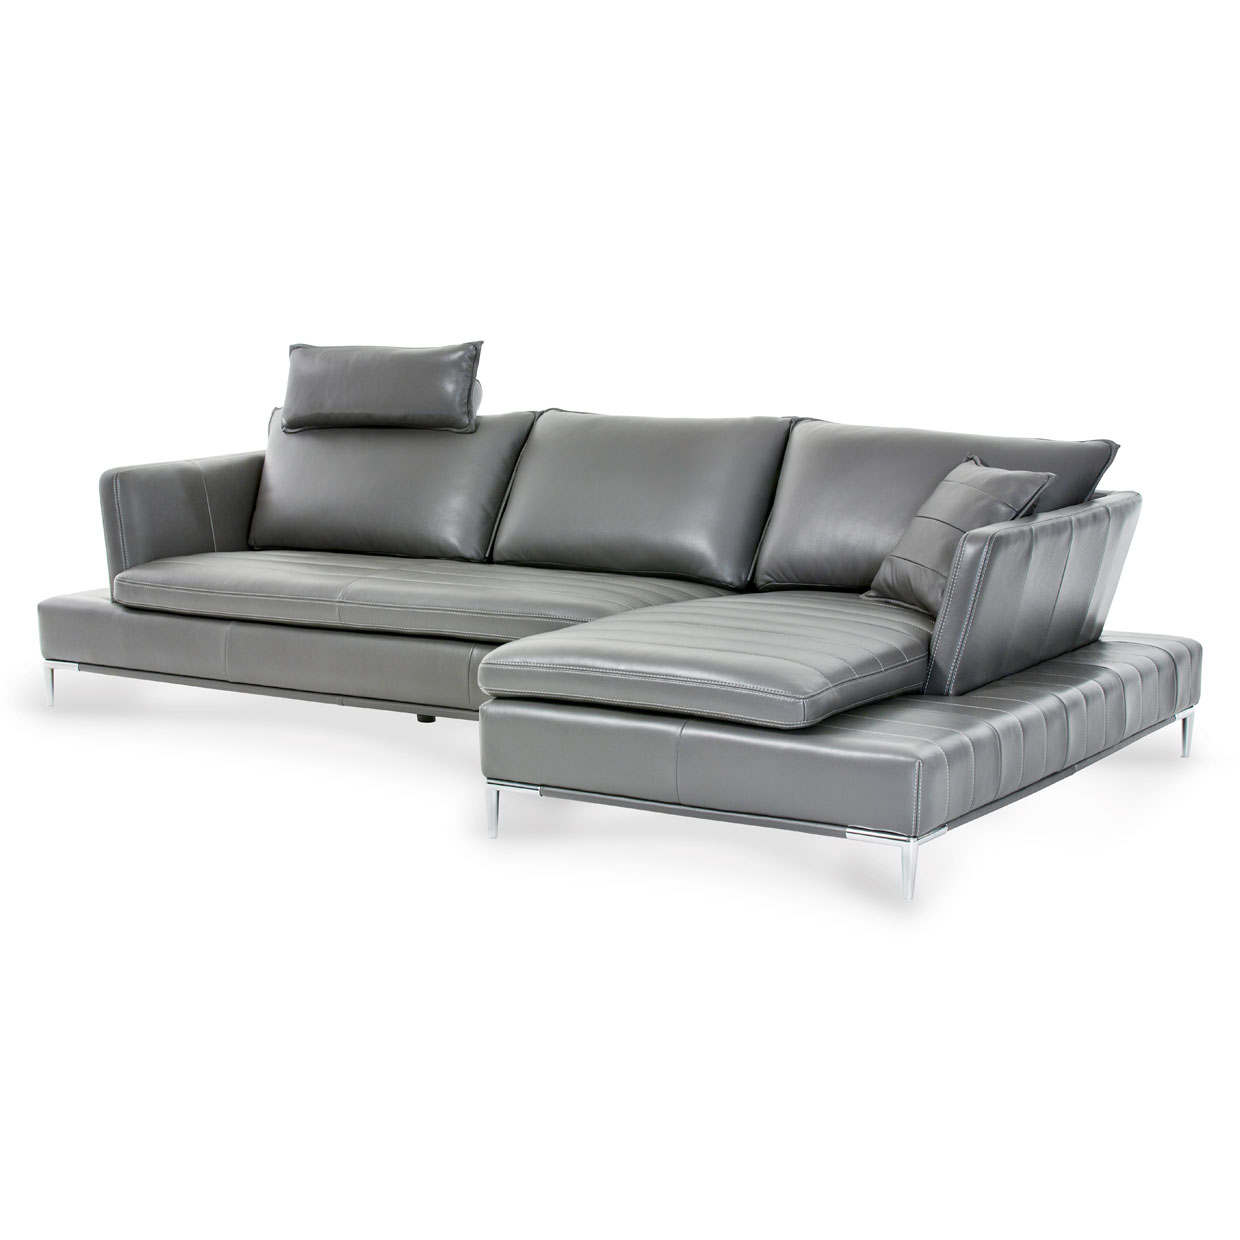 Lazzio 2 Pc Leather Sectional Set - Living Story - London